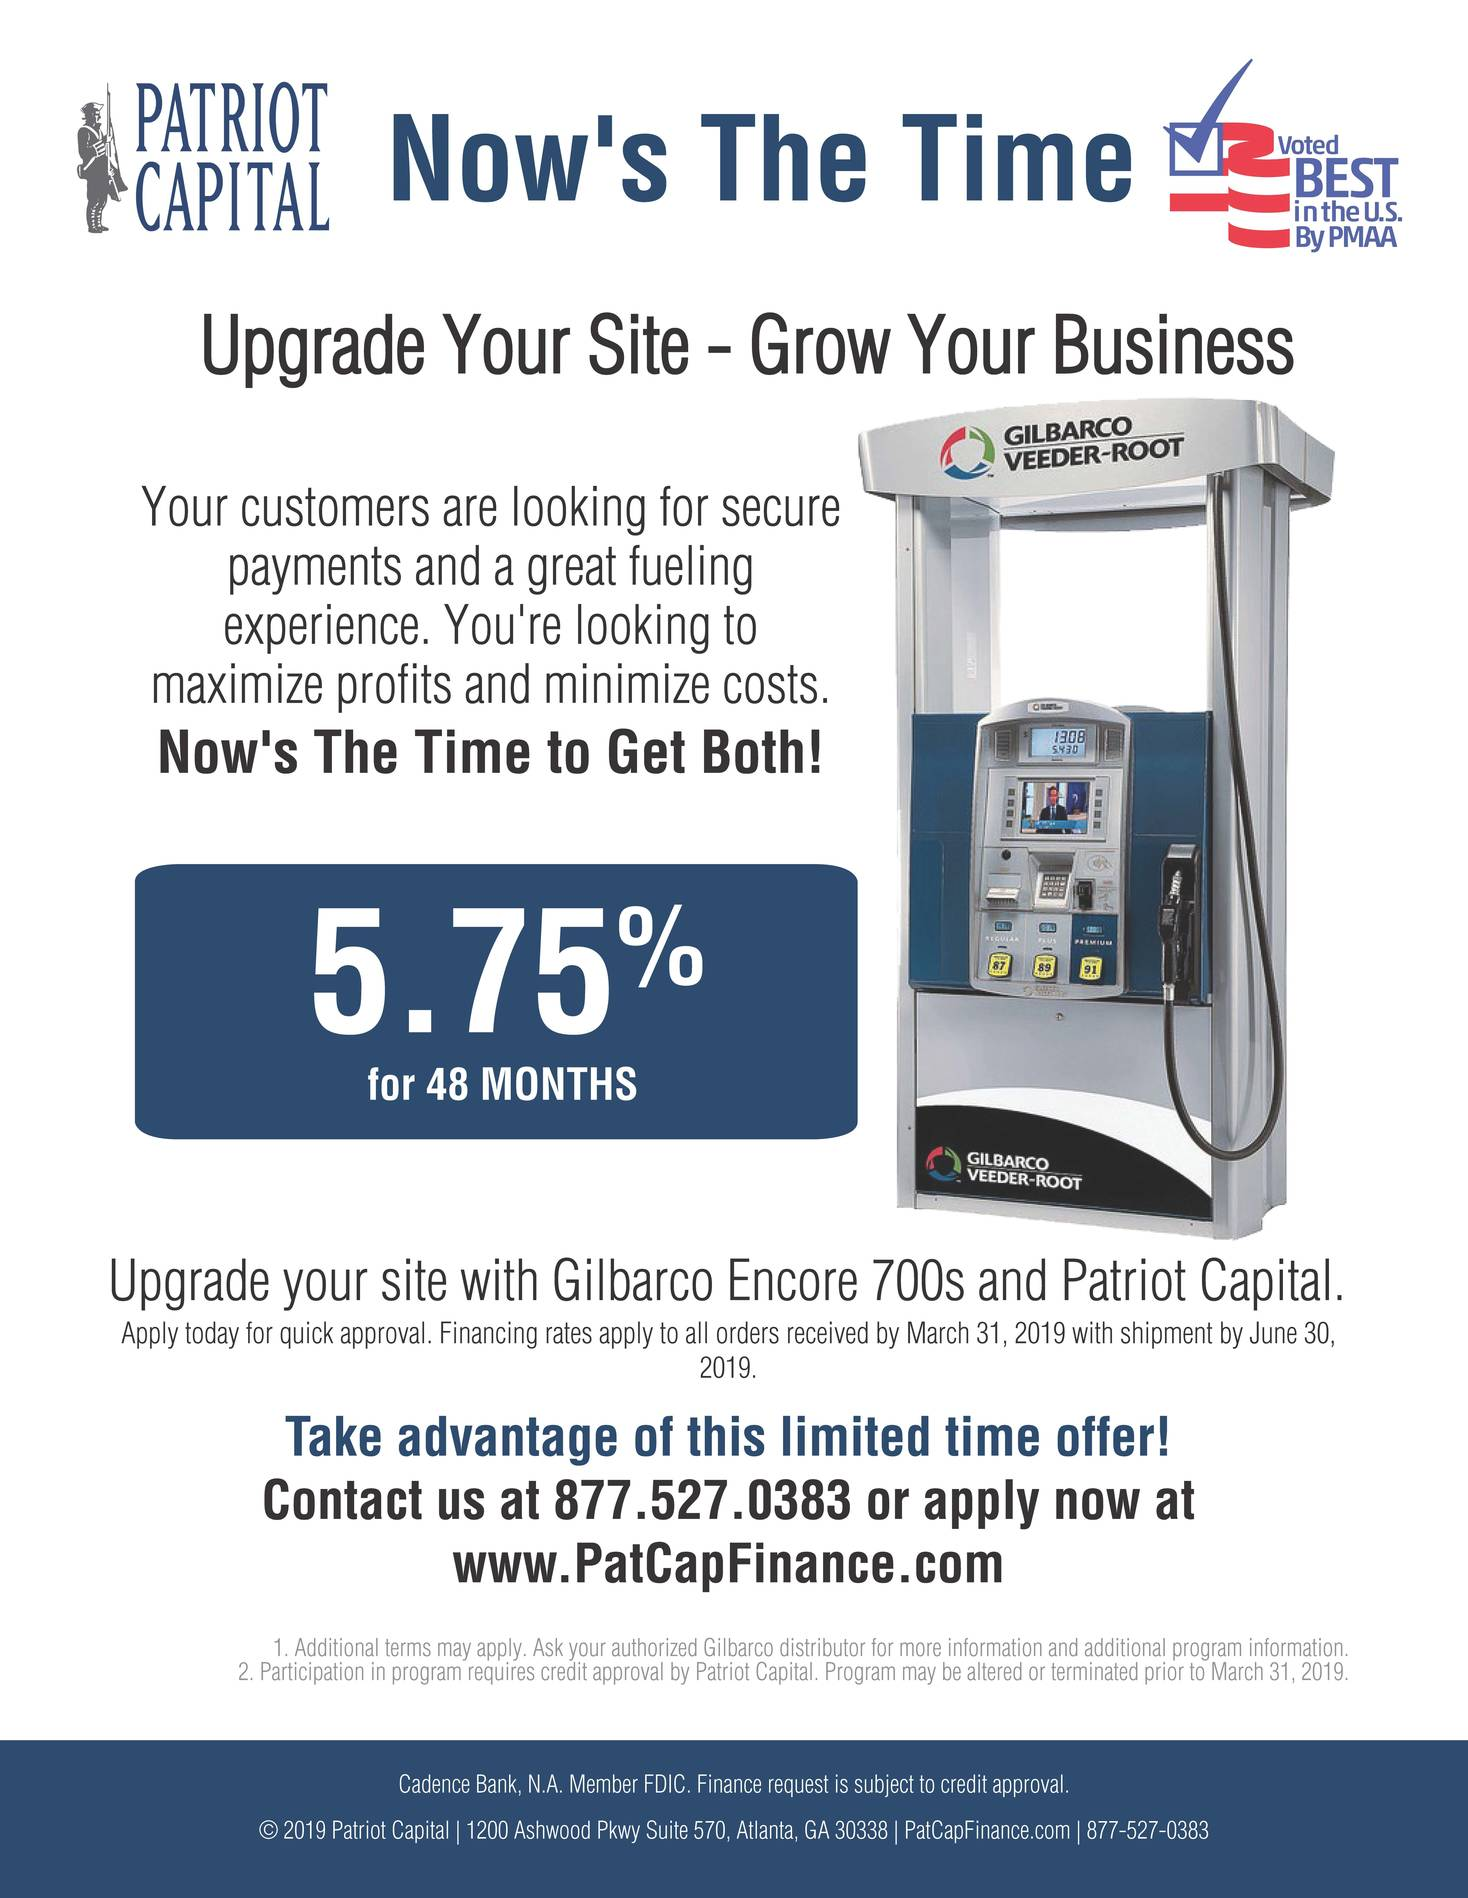 Upgrade Your Site and Grow Your Business. Apply for Financing Now!